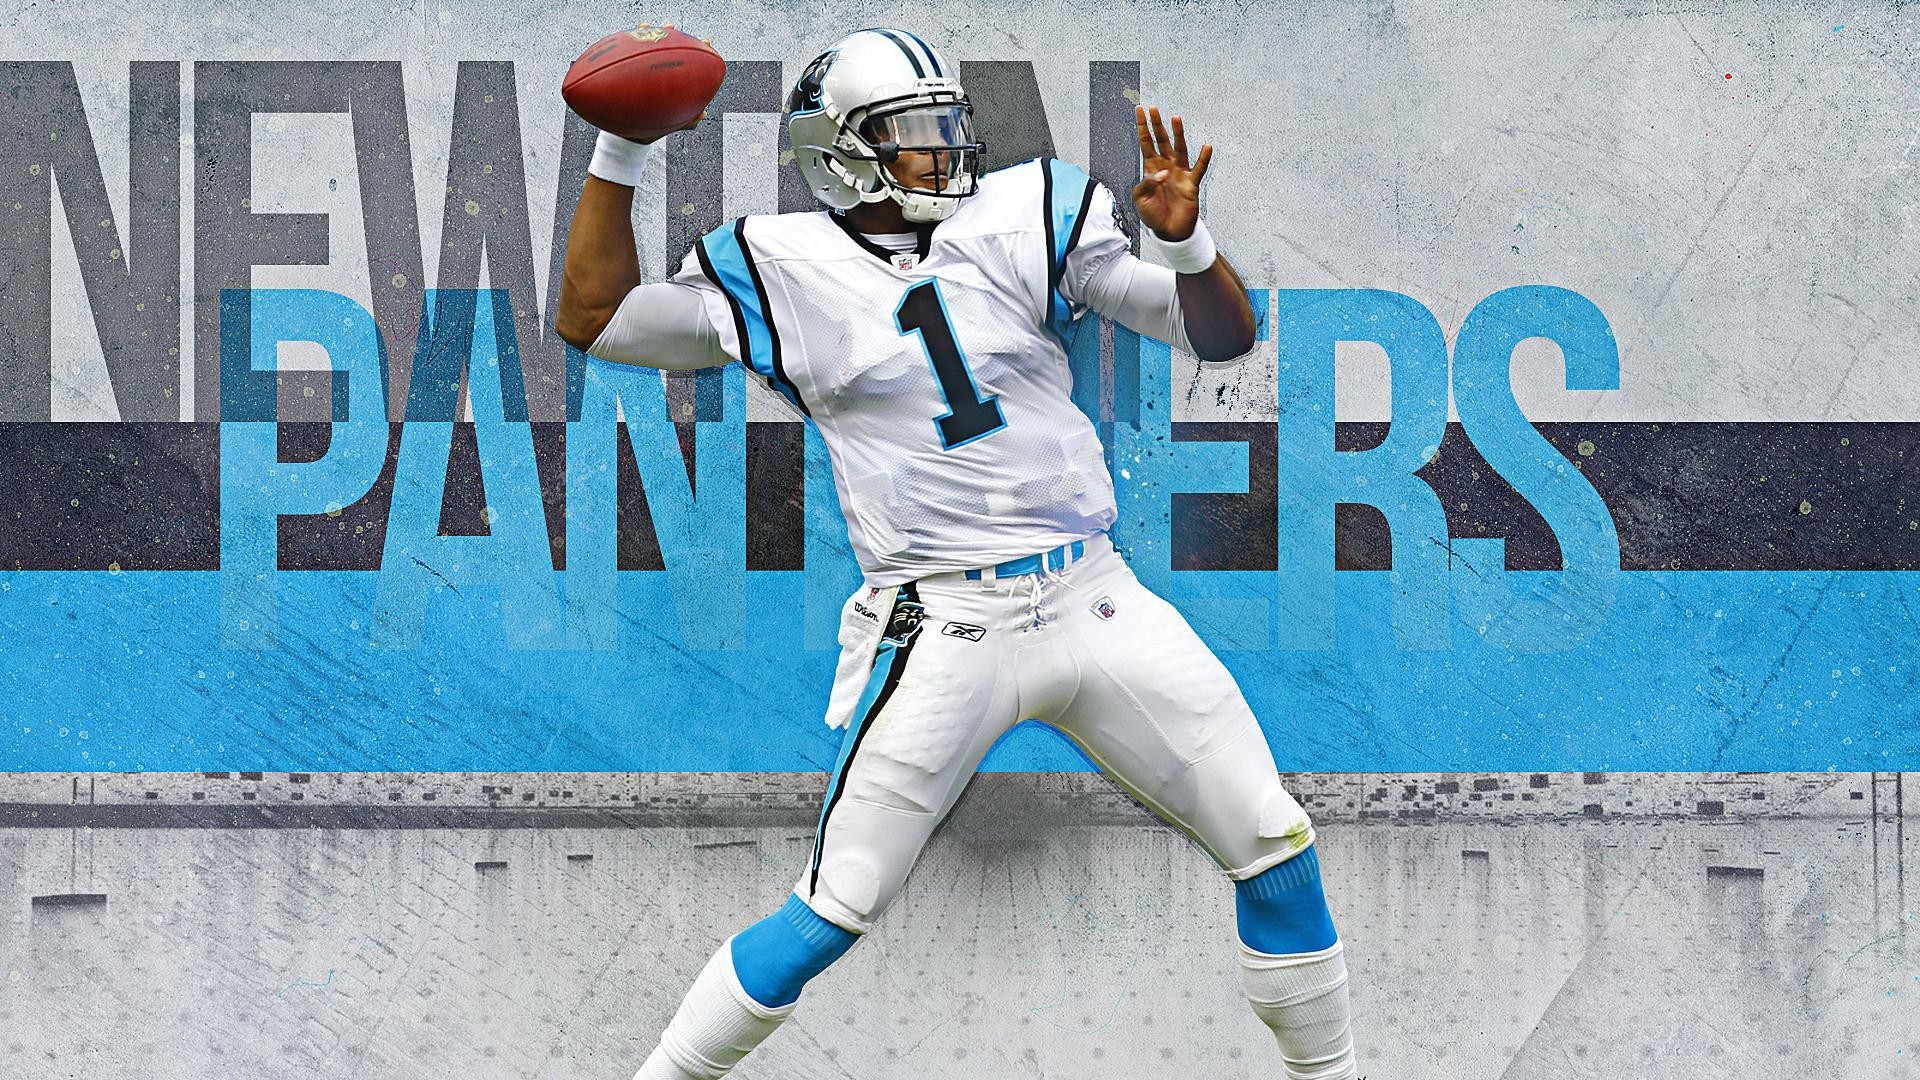 1920x1080 cam newton carolina panthers qb wallpaper - (#88069) - HQ Desktop . ...